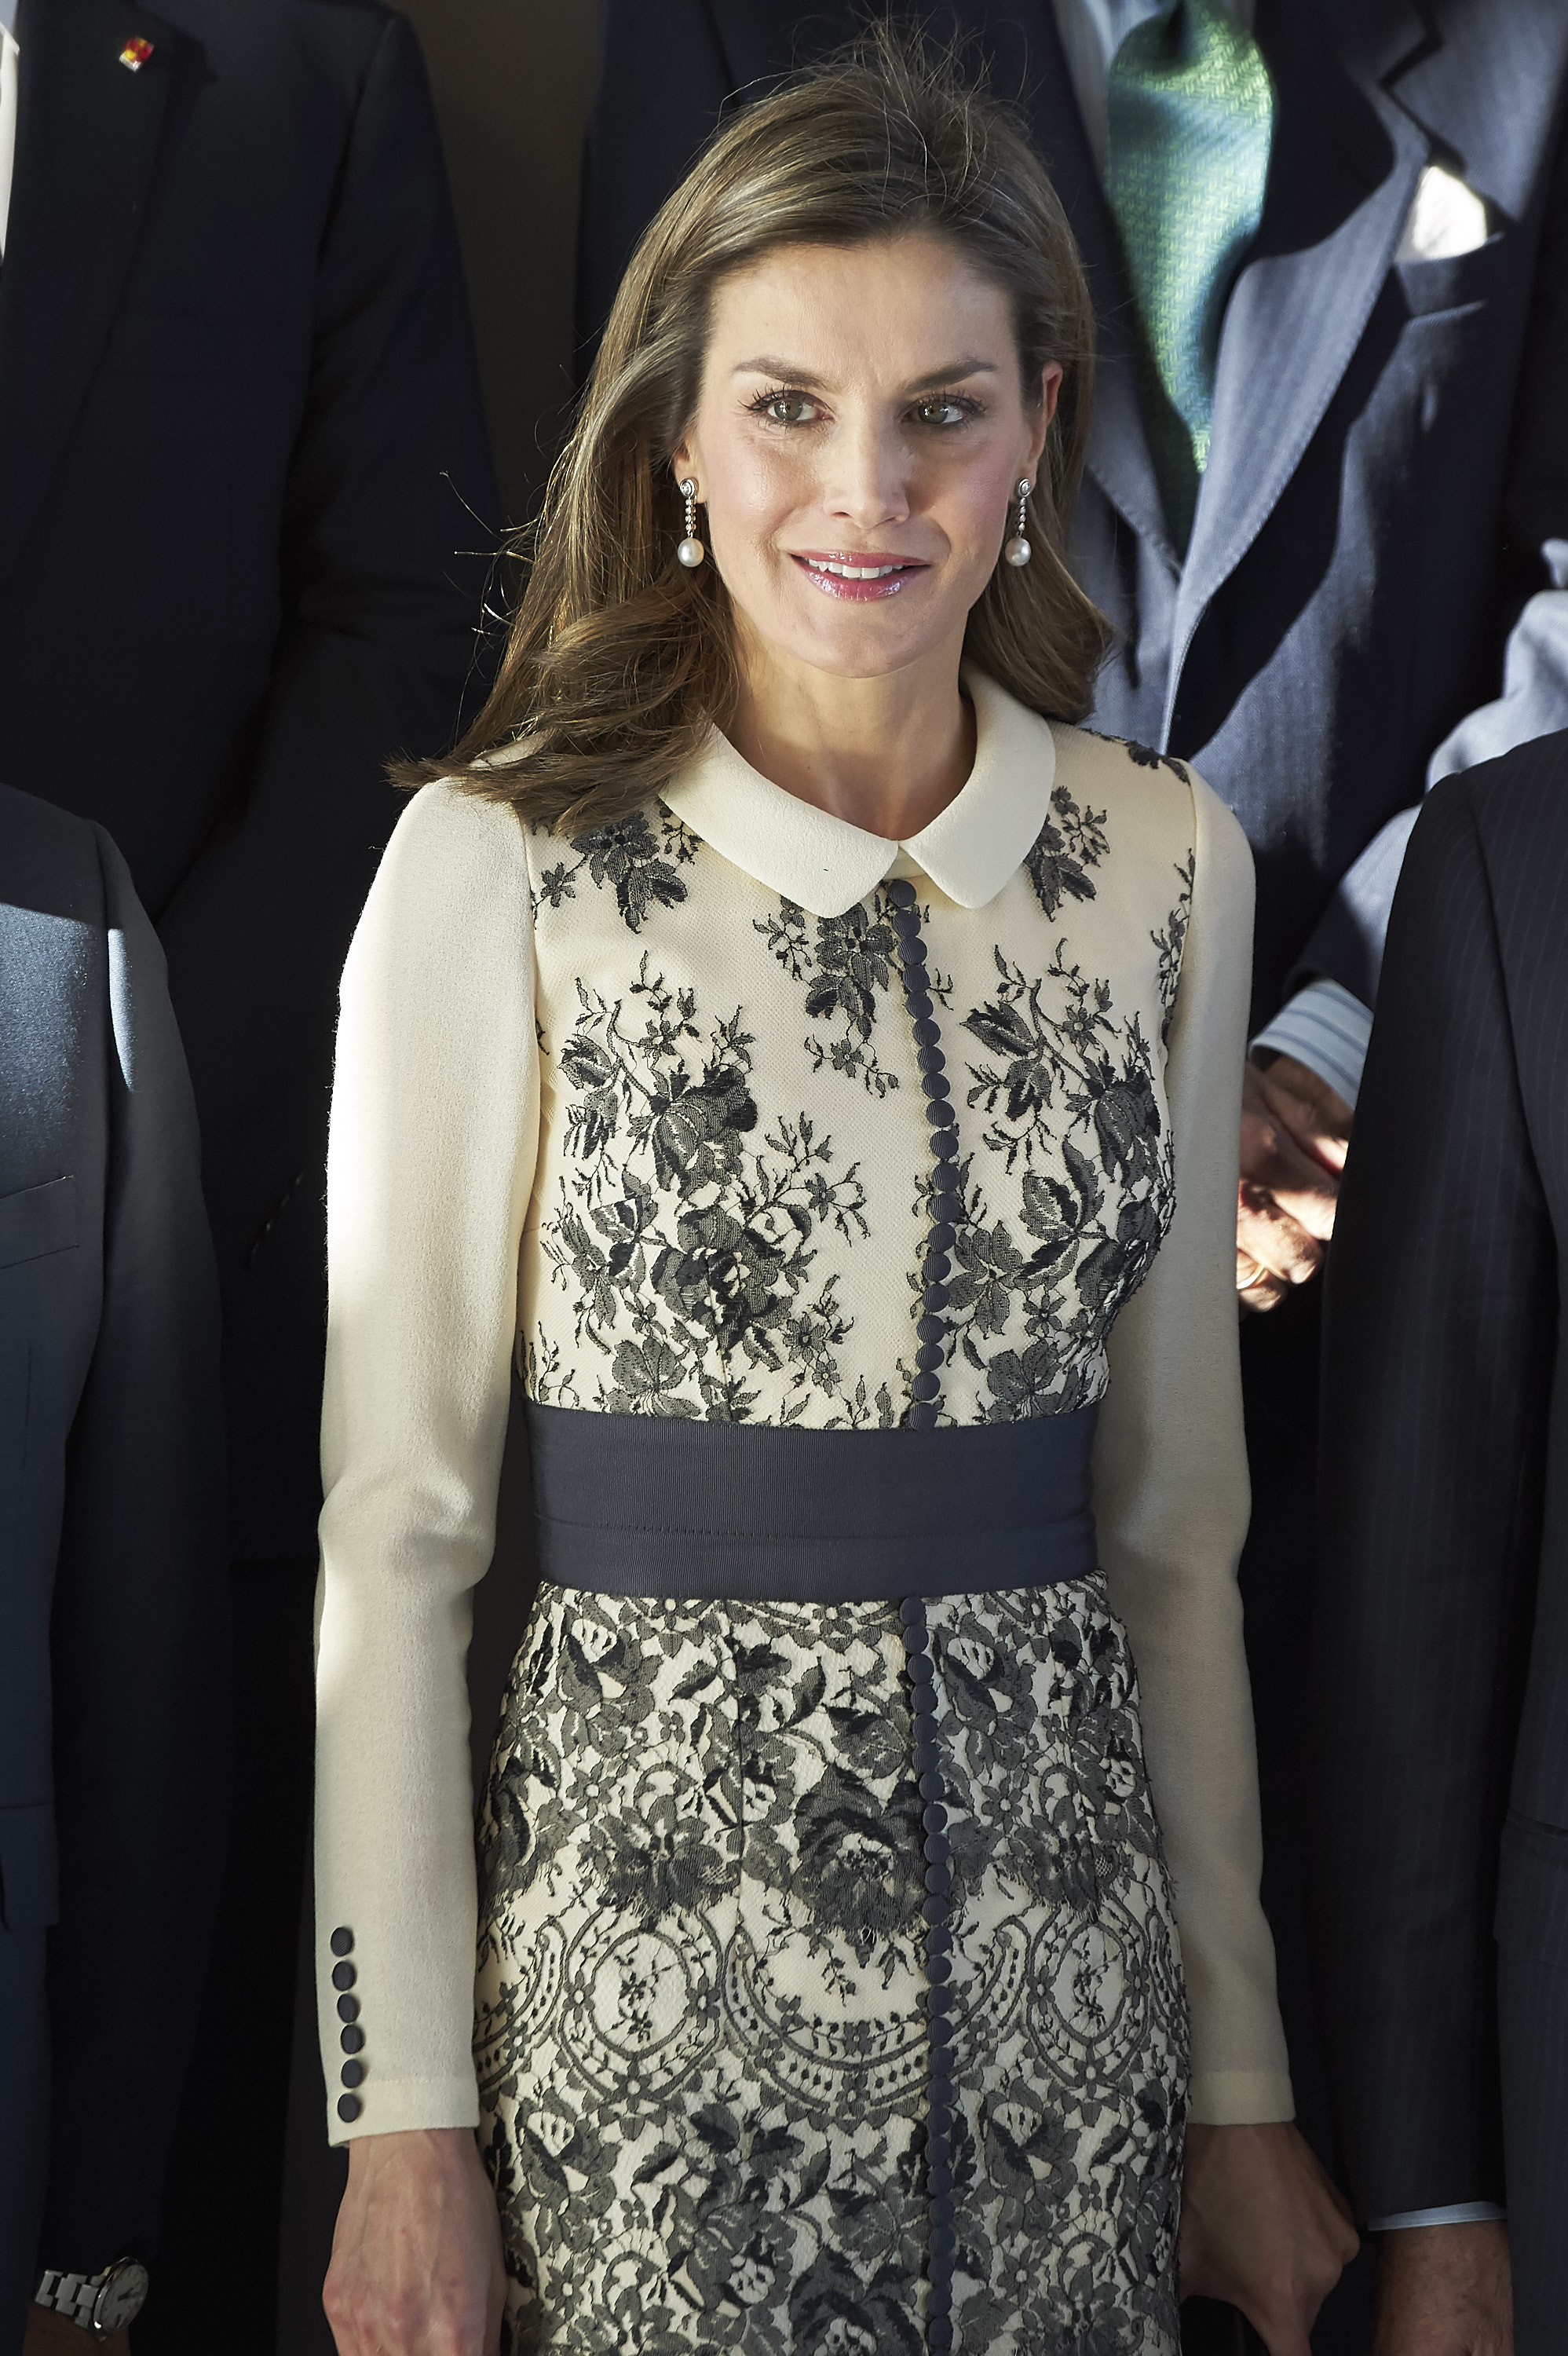 "<p>Queen Letizia of Spain has once again claimed Kate Middleton's crown when it comes to being the world's most stylish of royal.</p> <p>Known for her penchant for recycling designer outfits, for an appearance at the Prize for Magistral Action 2017 in Madrid, the former newsreader made a sartorial statement of a different kind.</p> <p>The Spanish royal donned a chic floral coat-dress from Spanish designer Felipe Verla that packed a serious style punch. She paired the creamy white coat decorated with lace-and-floral embroidery with a pair of pumps from luxury shoe brand Magrit and a tote bag from Nina Ricci.</p> <p>The look was feminine, fresh and showed that having to wrap up in cold climate doesn't mean comprising in the style department.</p> <p>The Duchess of Cambridge is also a fan of the statement coat. The wife of Prince William<a href=""https://honey.nine.com.au/2017/11/15/02/16/duchess-of-cambridge-keeps-baby-bump-hidden-on-solo-royal-engagement"" target=""_blank""> donned a loose-fitting long-line caramel coat</a> for a visit to the Hornsey Road Children's Centre in London in late November, but the look didn't hit the exact same sartorial notes that Letizia did.</p> <p>Burberry, Prada and Carolina Herrera are just some of the designer names the Spanish Queen has donned over the years.</p> <p>Her ability to mix and match budget pieces from stores such as Zara and Mango with edgy couture attire has impressed fashion fans all over the world.<br /> <br /> Click through to see some of the recent fashion wins of Queen Letizia of Spain.</p>"